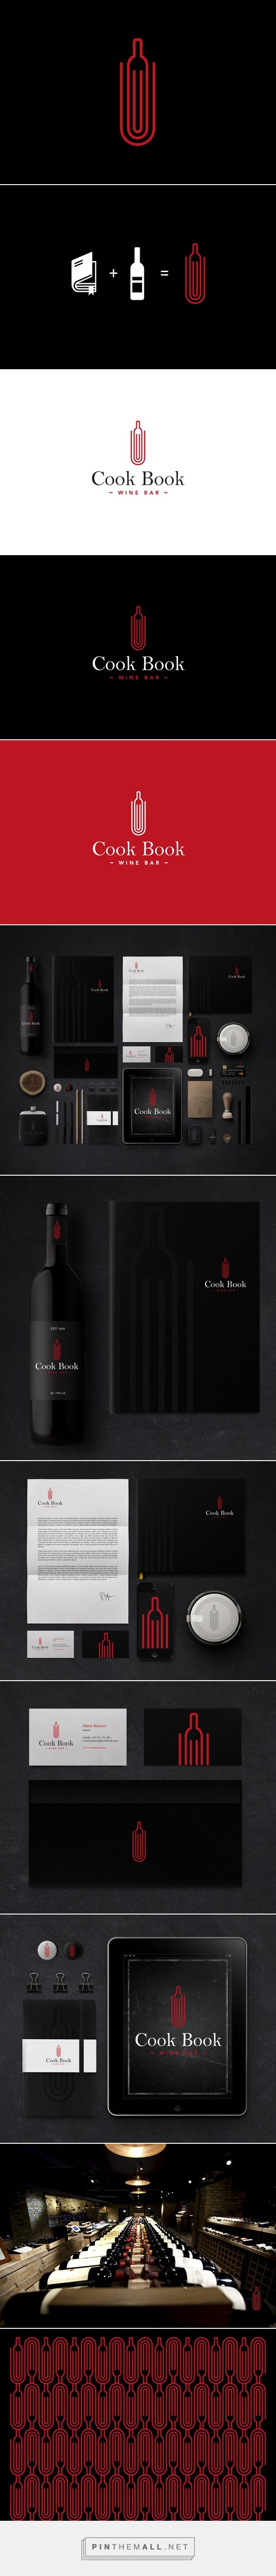 Cook Book Wine Bar On Behance By A Grouped Images Picture Graphic Design Logo Corporate Identity Design Brand Identity Design